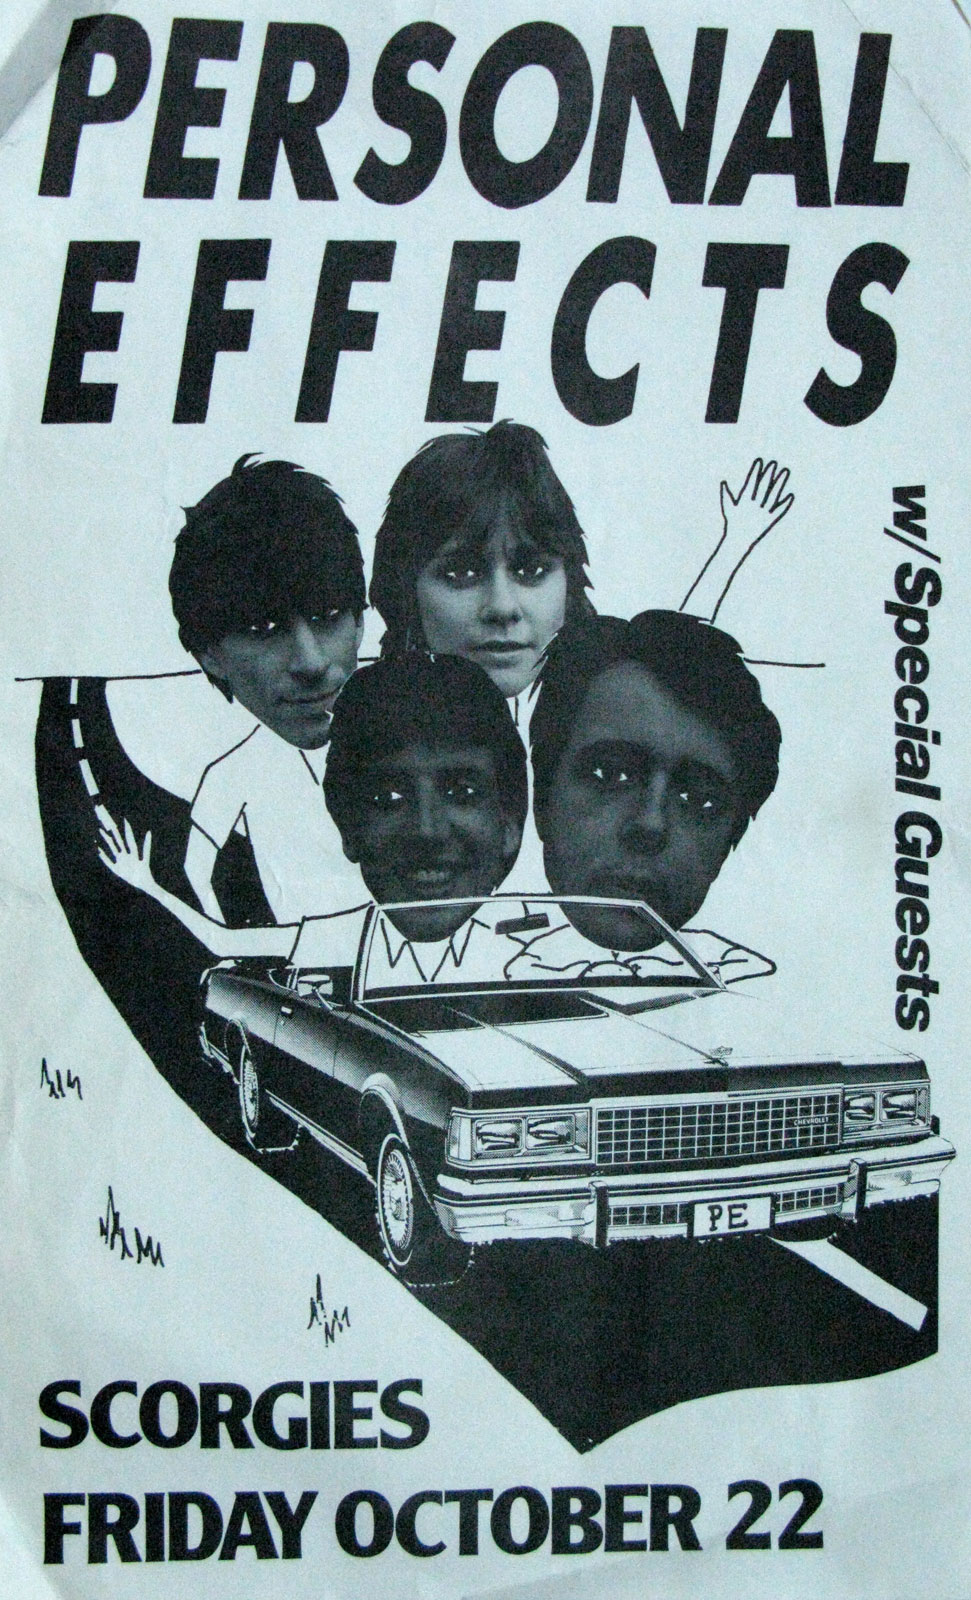 Poster for Personal Effects at Scorgies in Rochester, New York on 10.22.1982